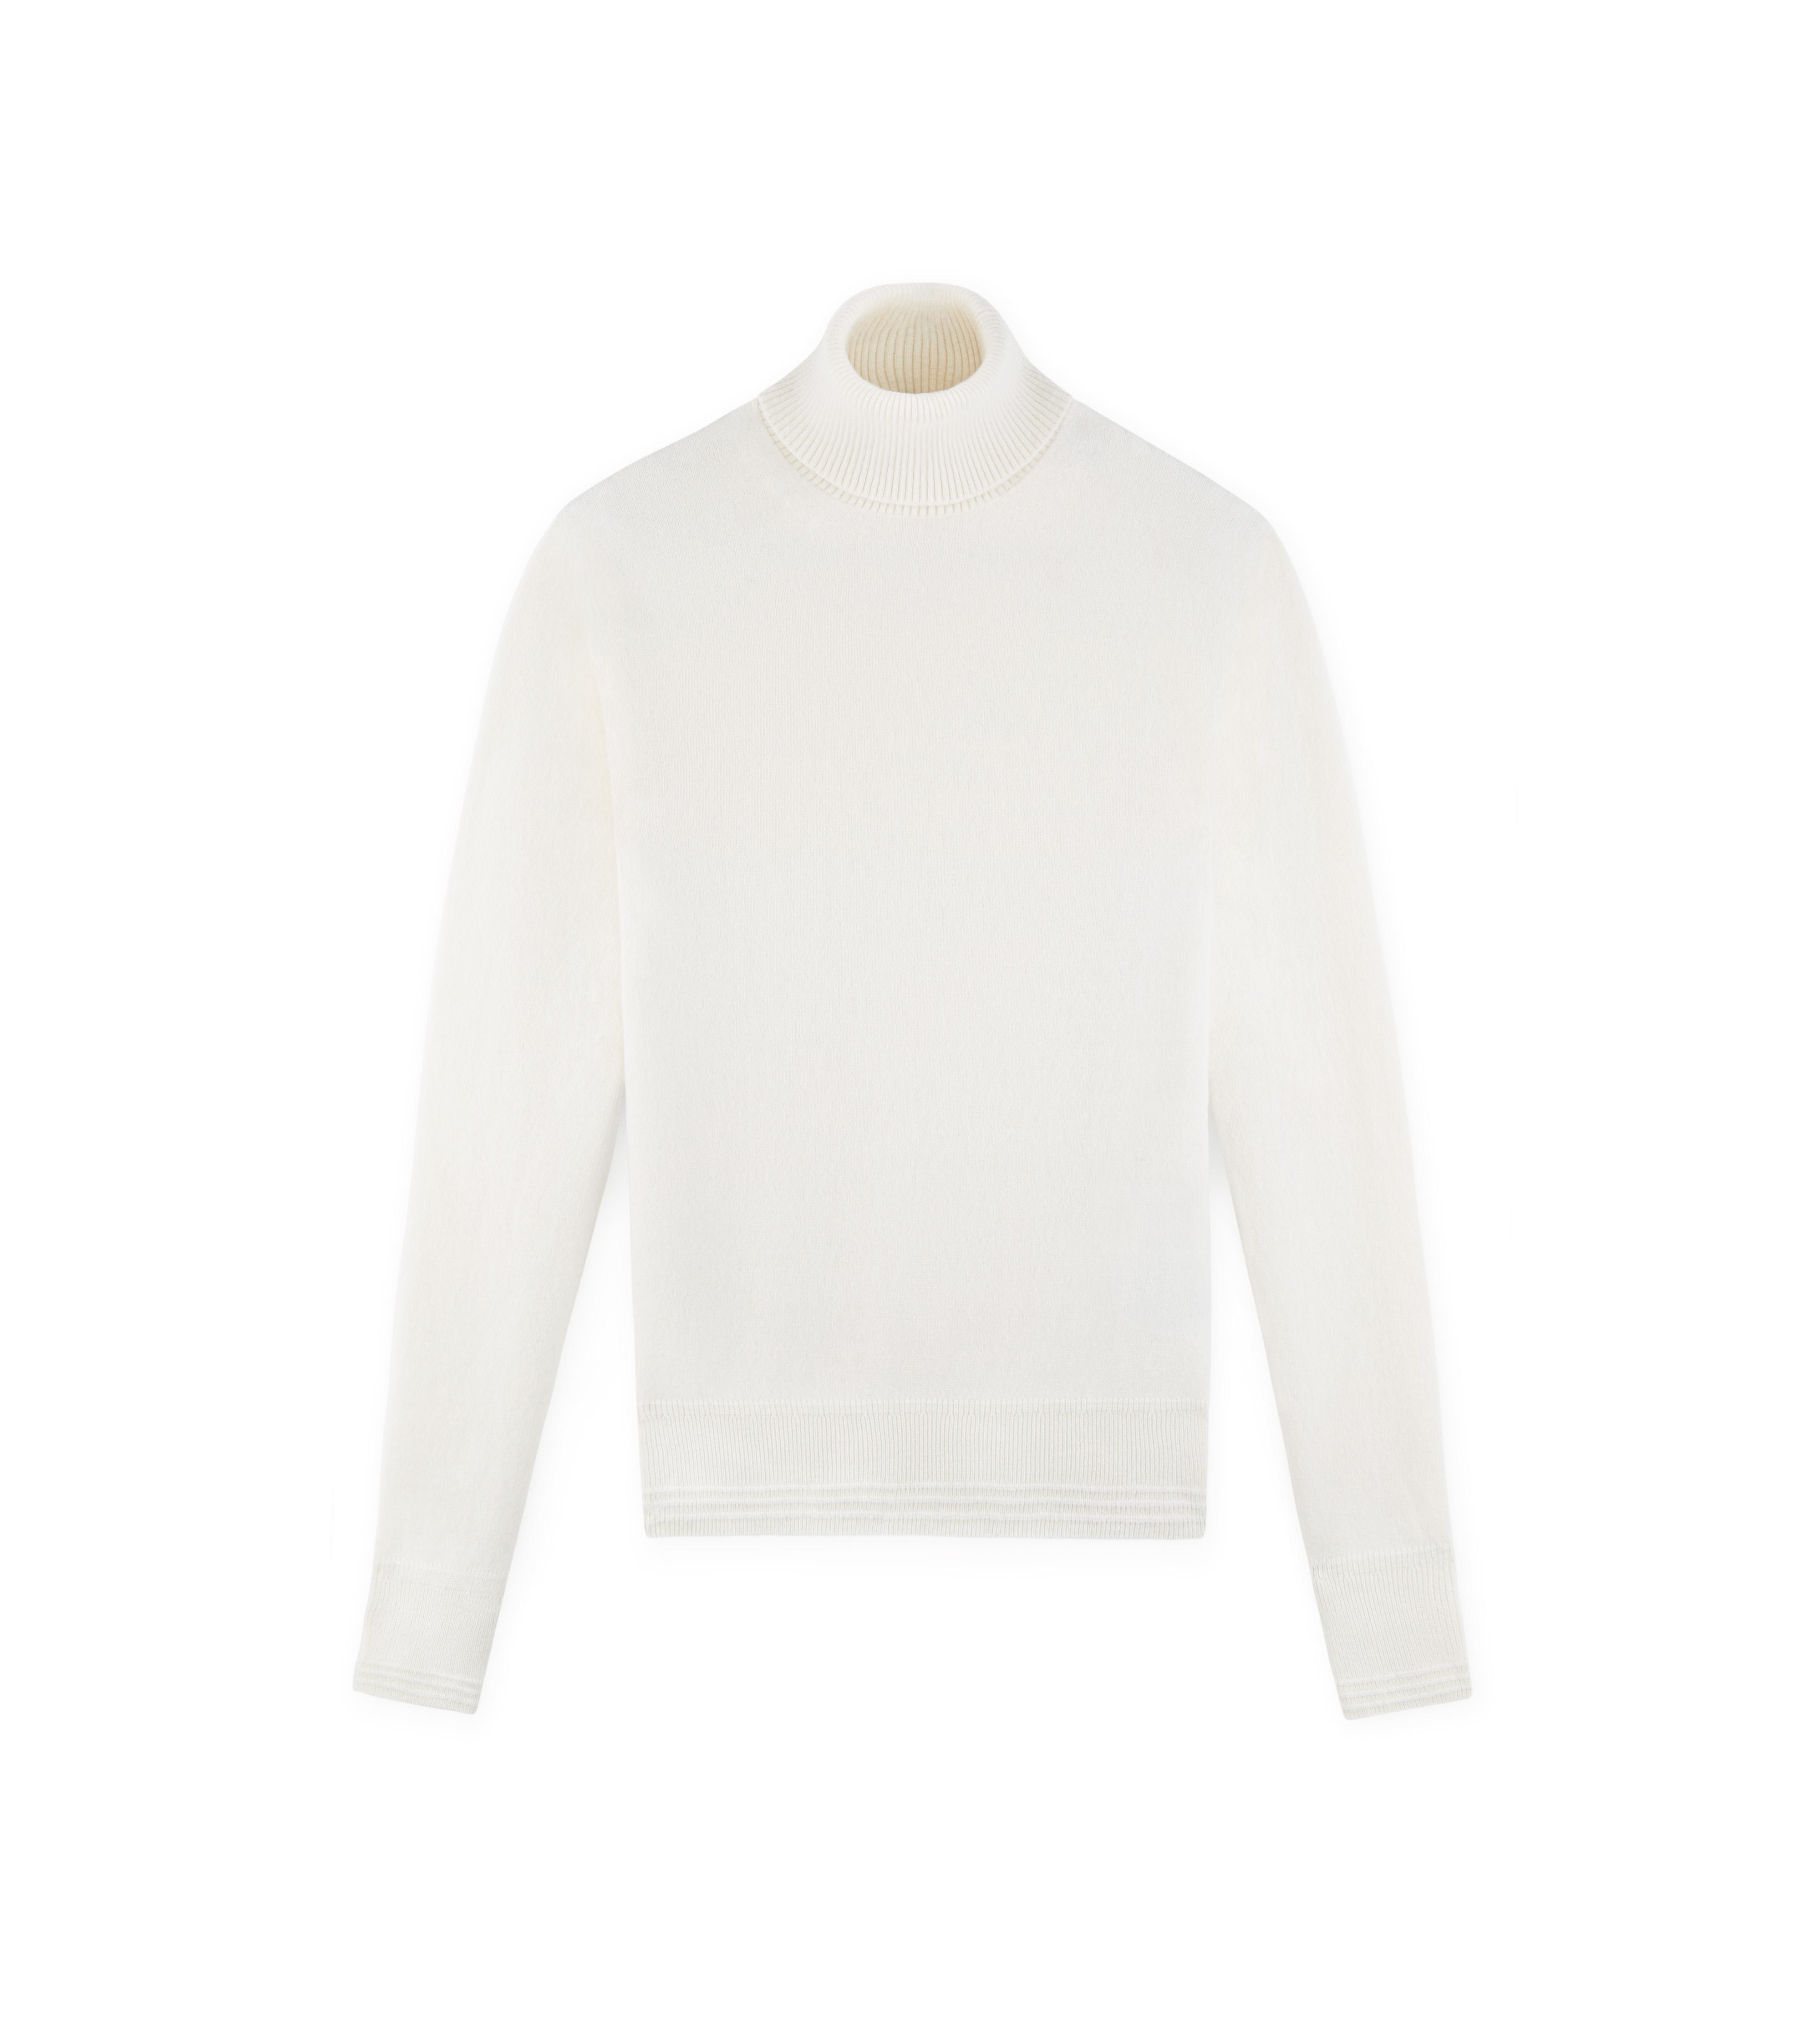 CLASSIC CASHMERE IVORY TURTLENECK A thumbnail